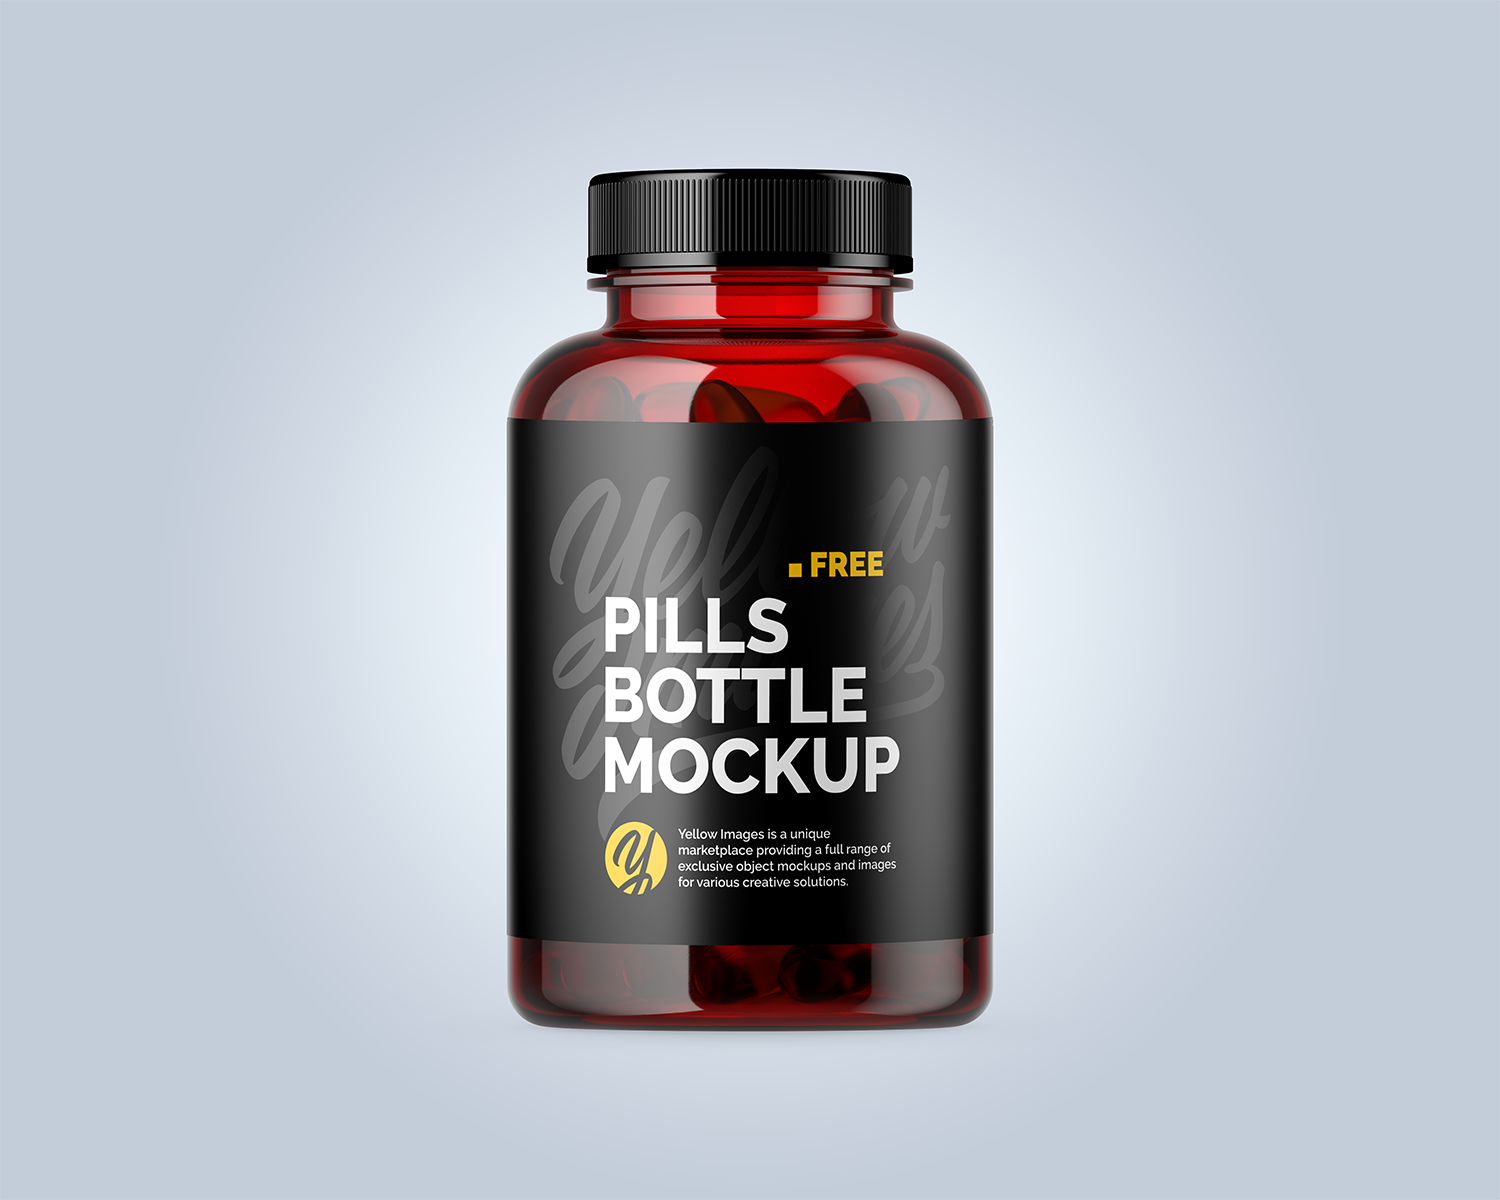 Free Plastic Red Bottle with Fish Oil Mockup